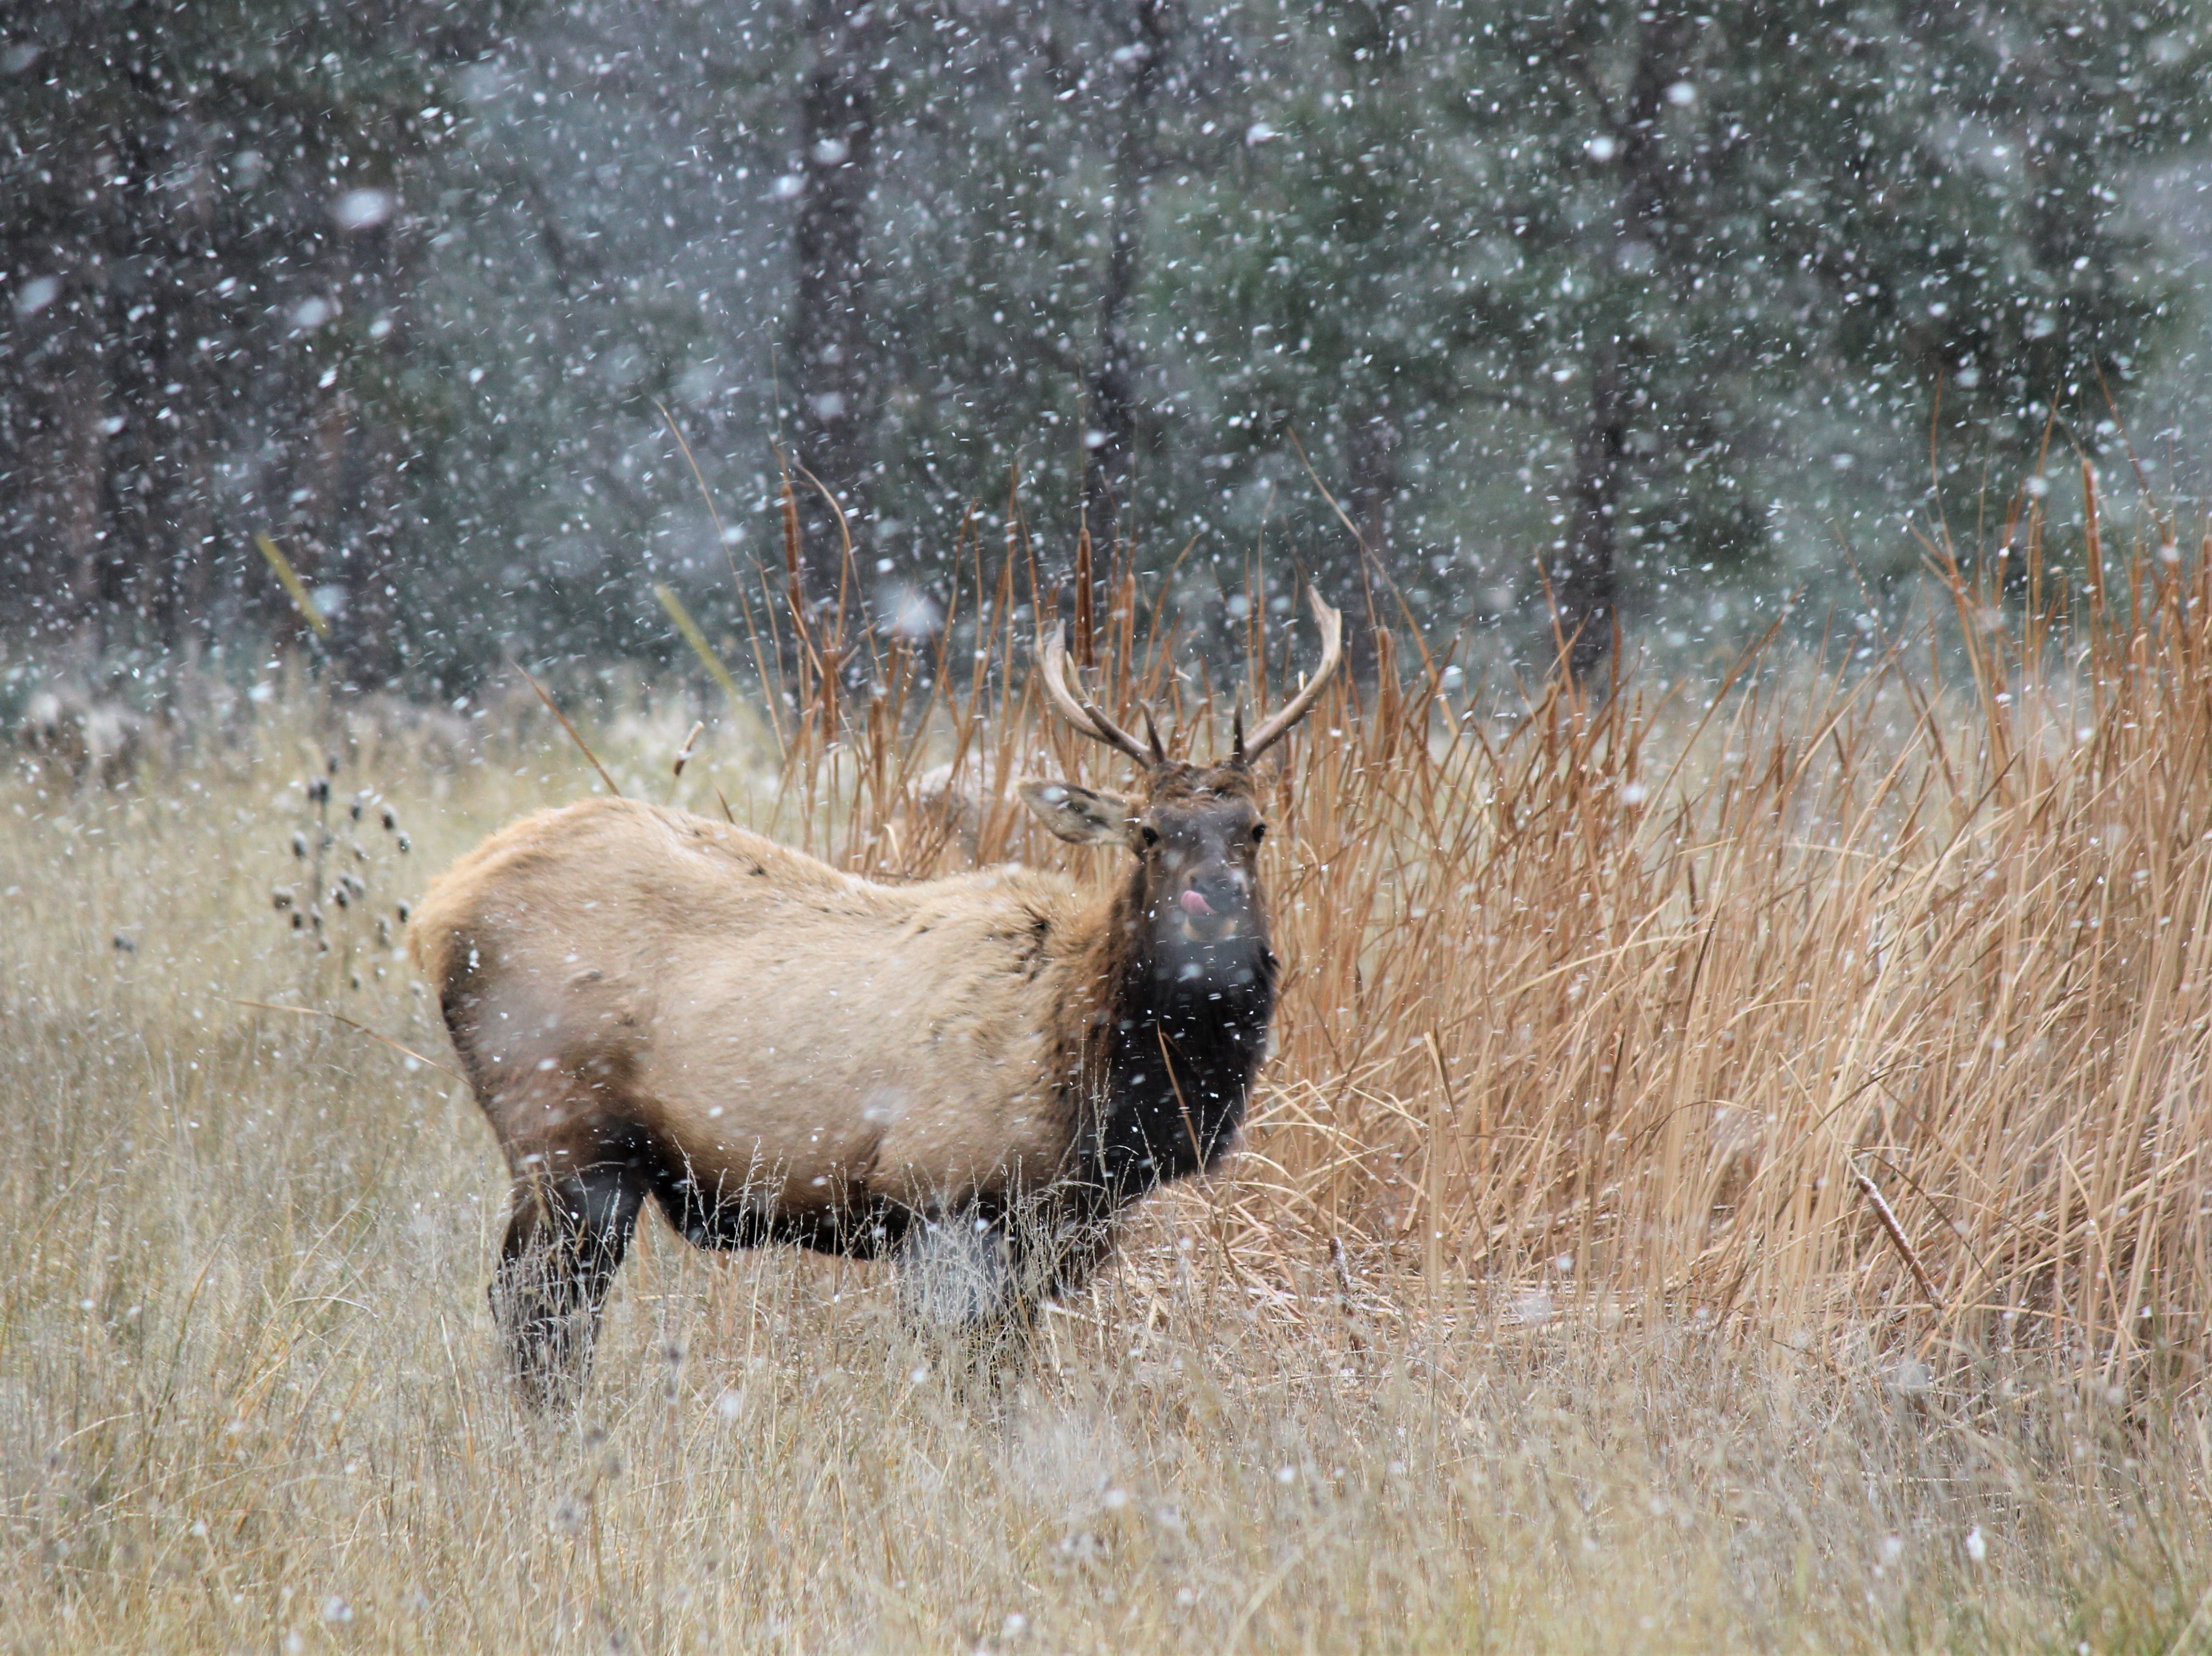 A proud bull stands strong in a field. He seems to be catching the snow on his tongue as the Village of Ruidoso saw its first major snowfall today.